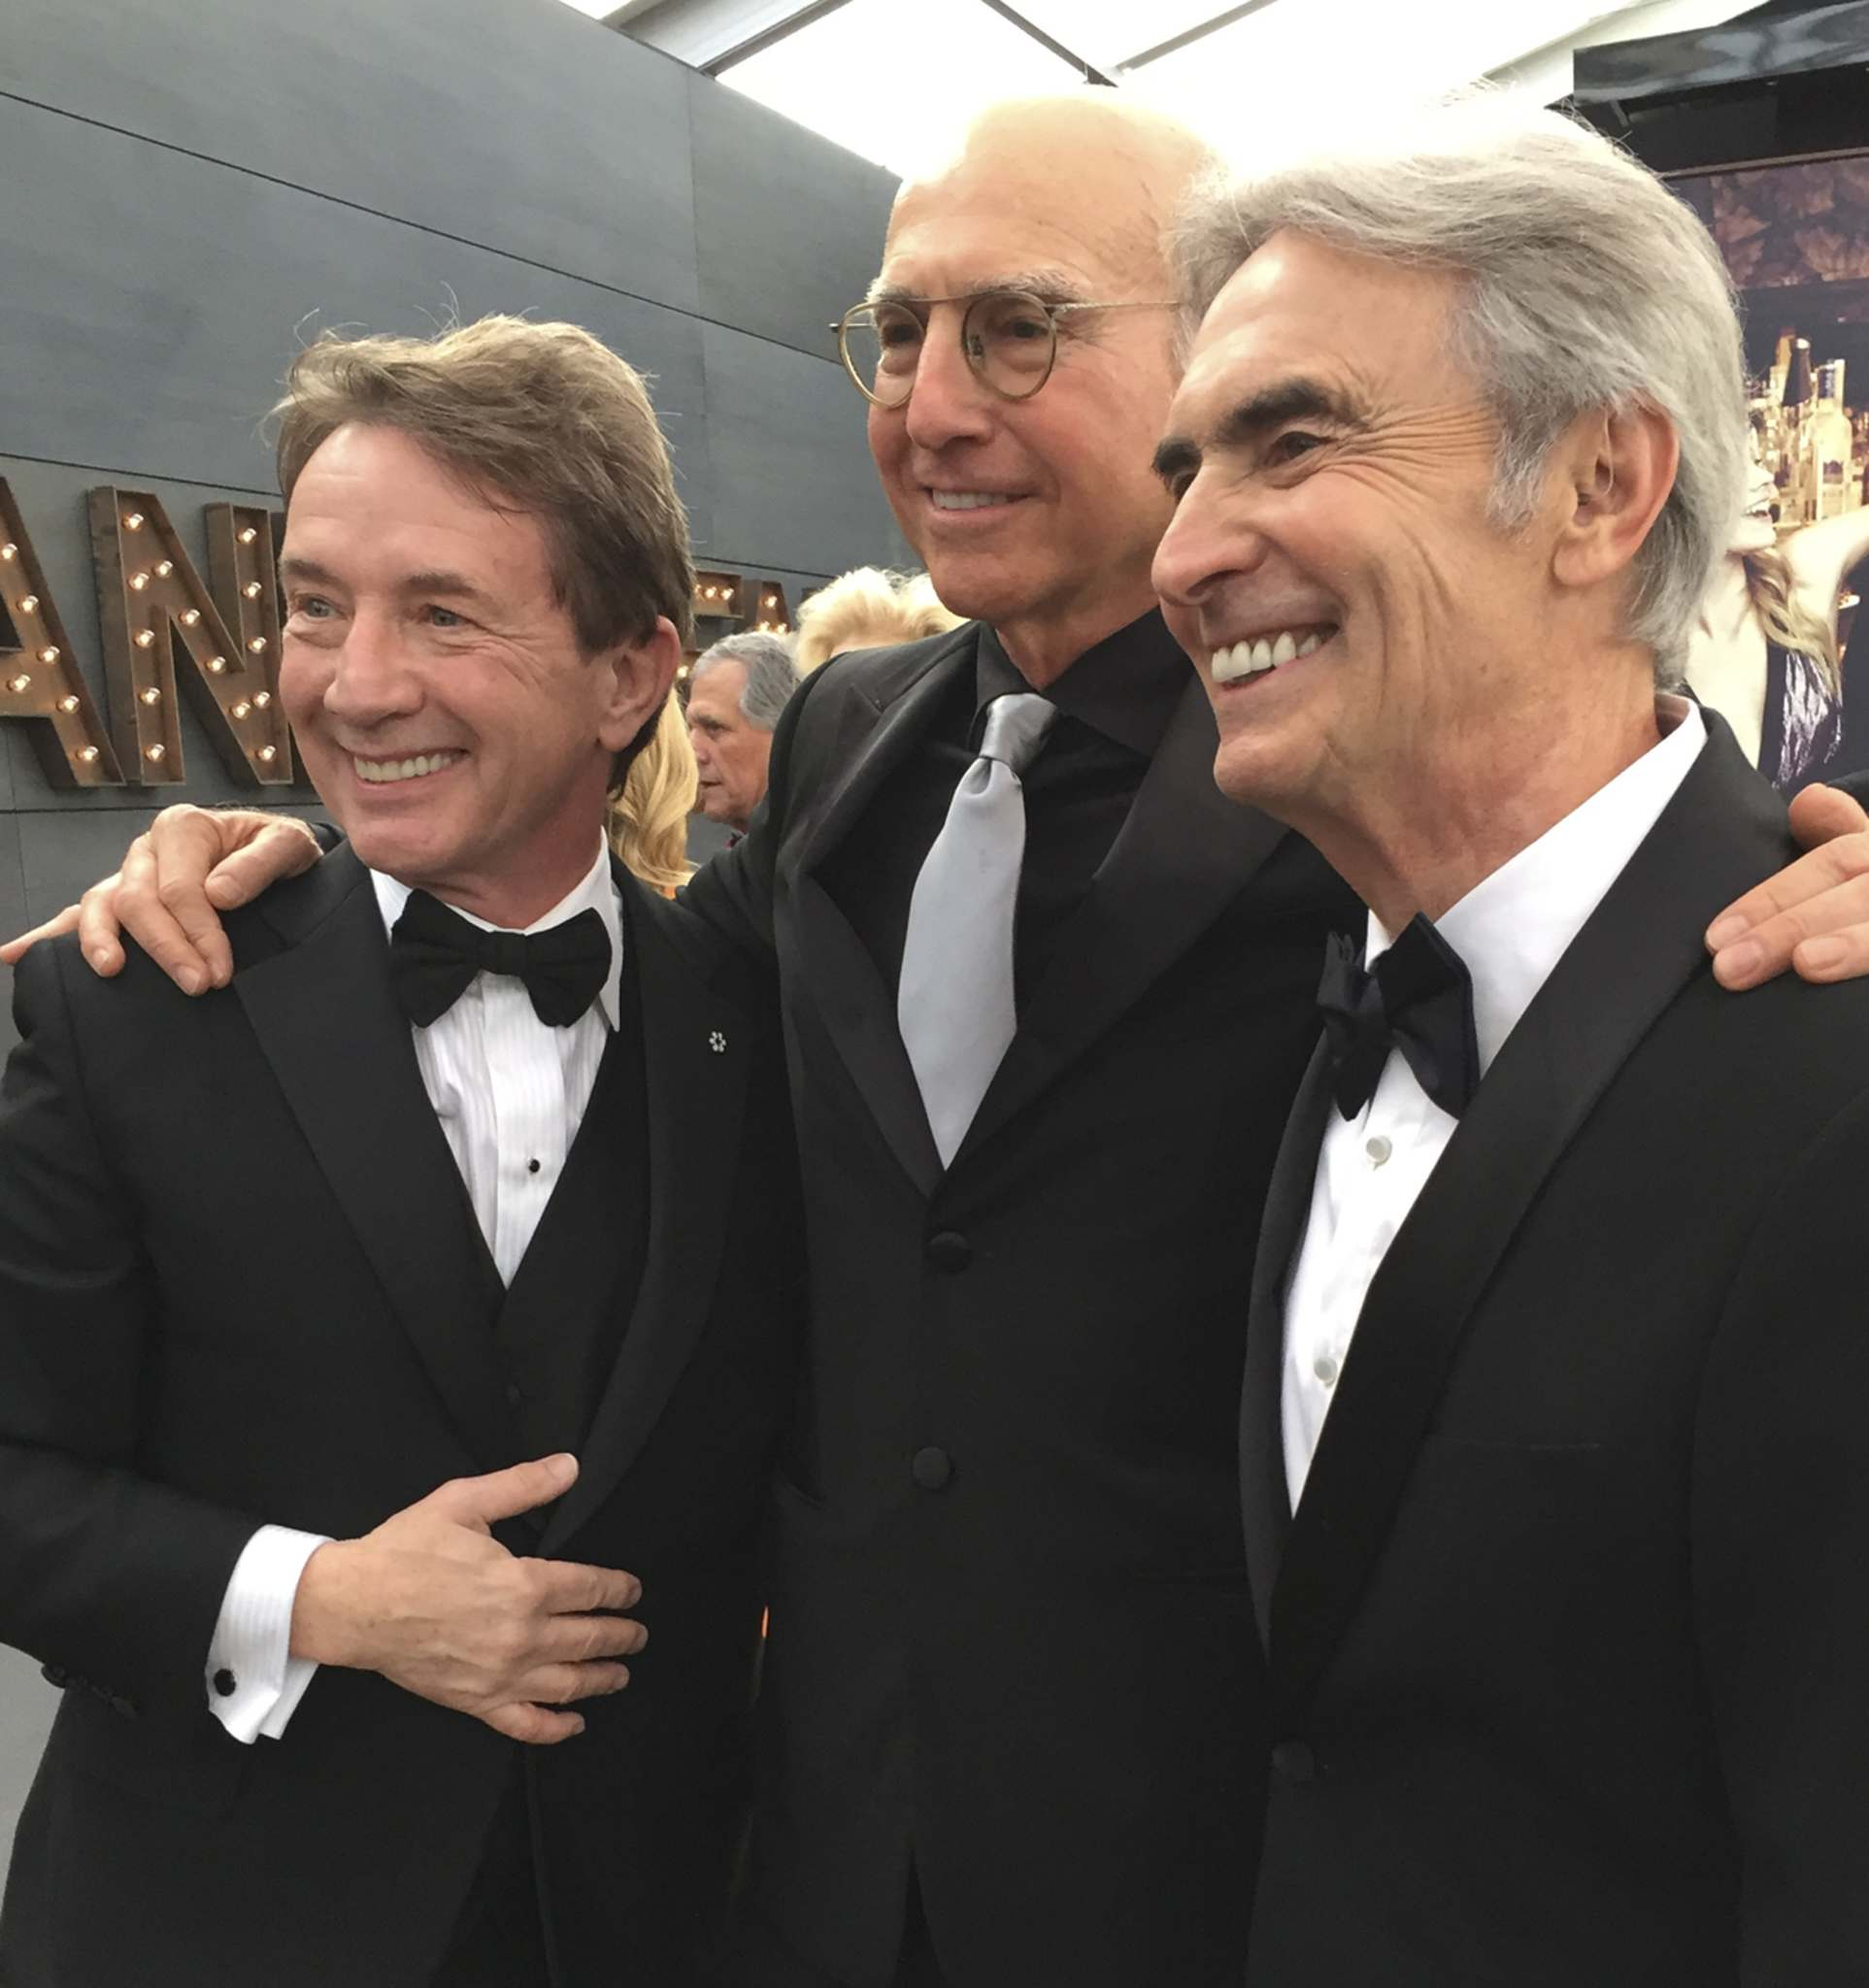 Martin Short (left) and Larry David (centre), seen here with Steinberg at the Vanity Fair Oscar party in 2016, are just two of the many comedic legends profiled in Inside Comedy.</p>